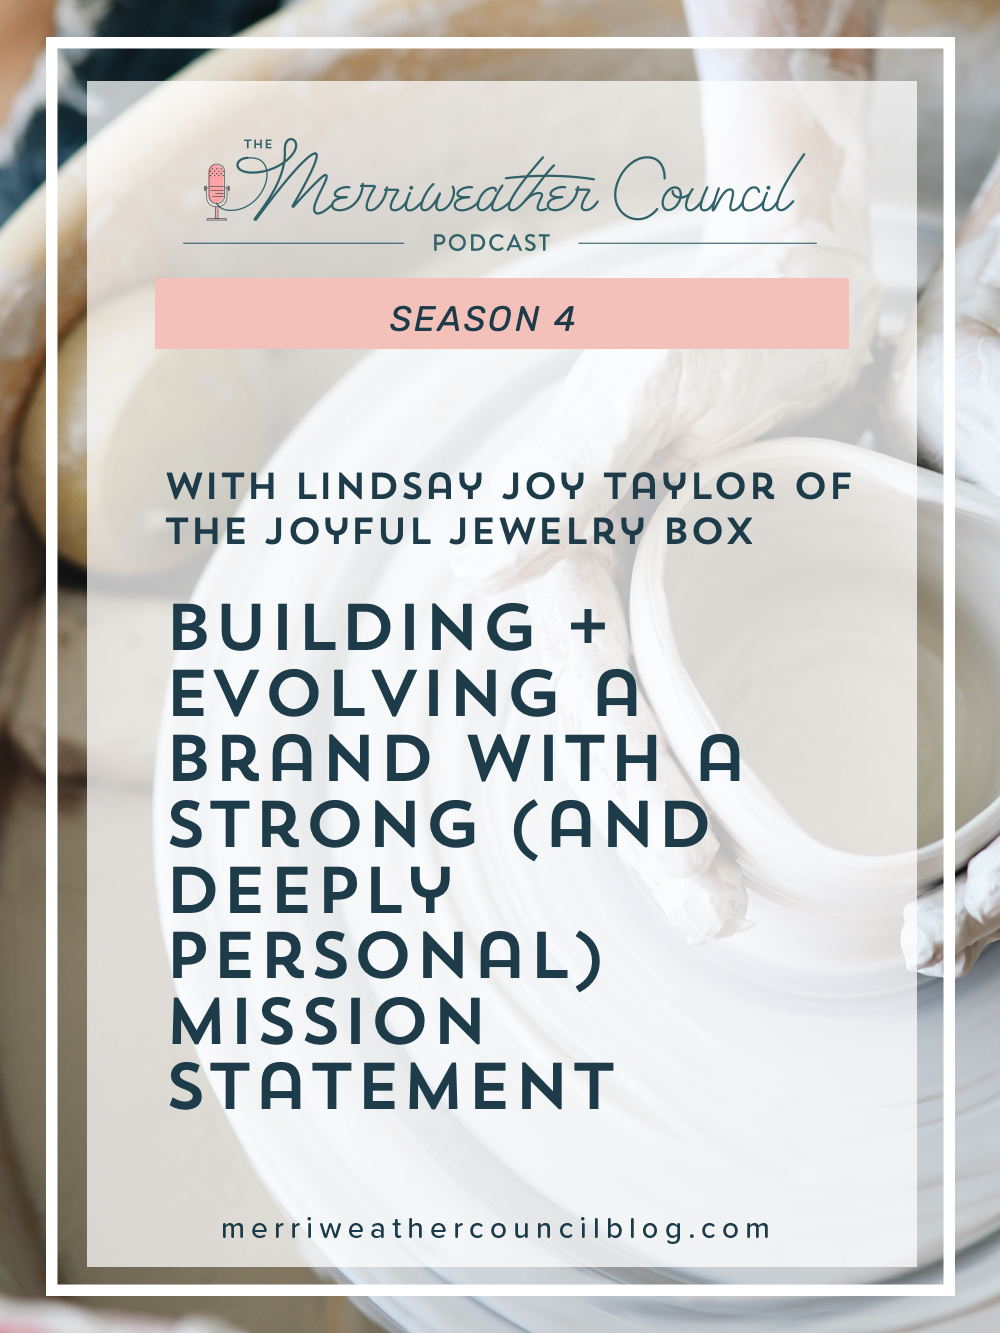 Building + Evolving a Brand with a Strong (and Deeply Personal) Mission Statement   Merriweather Council Podcast